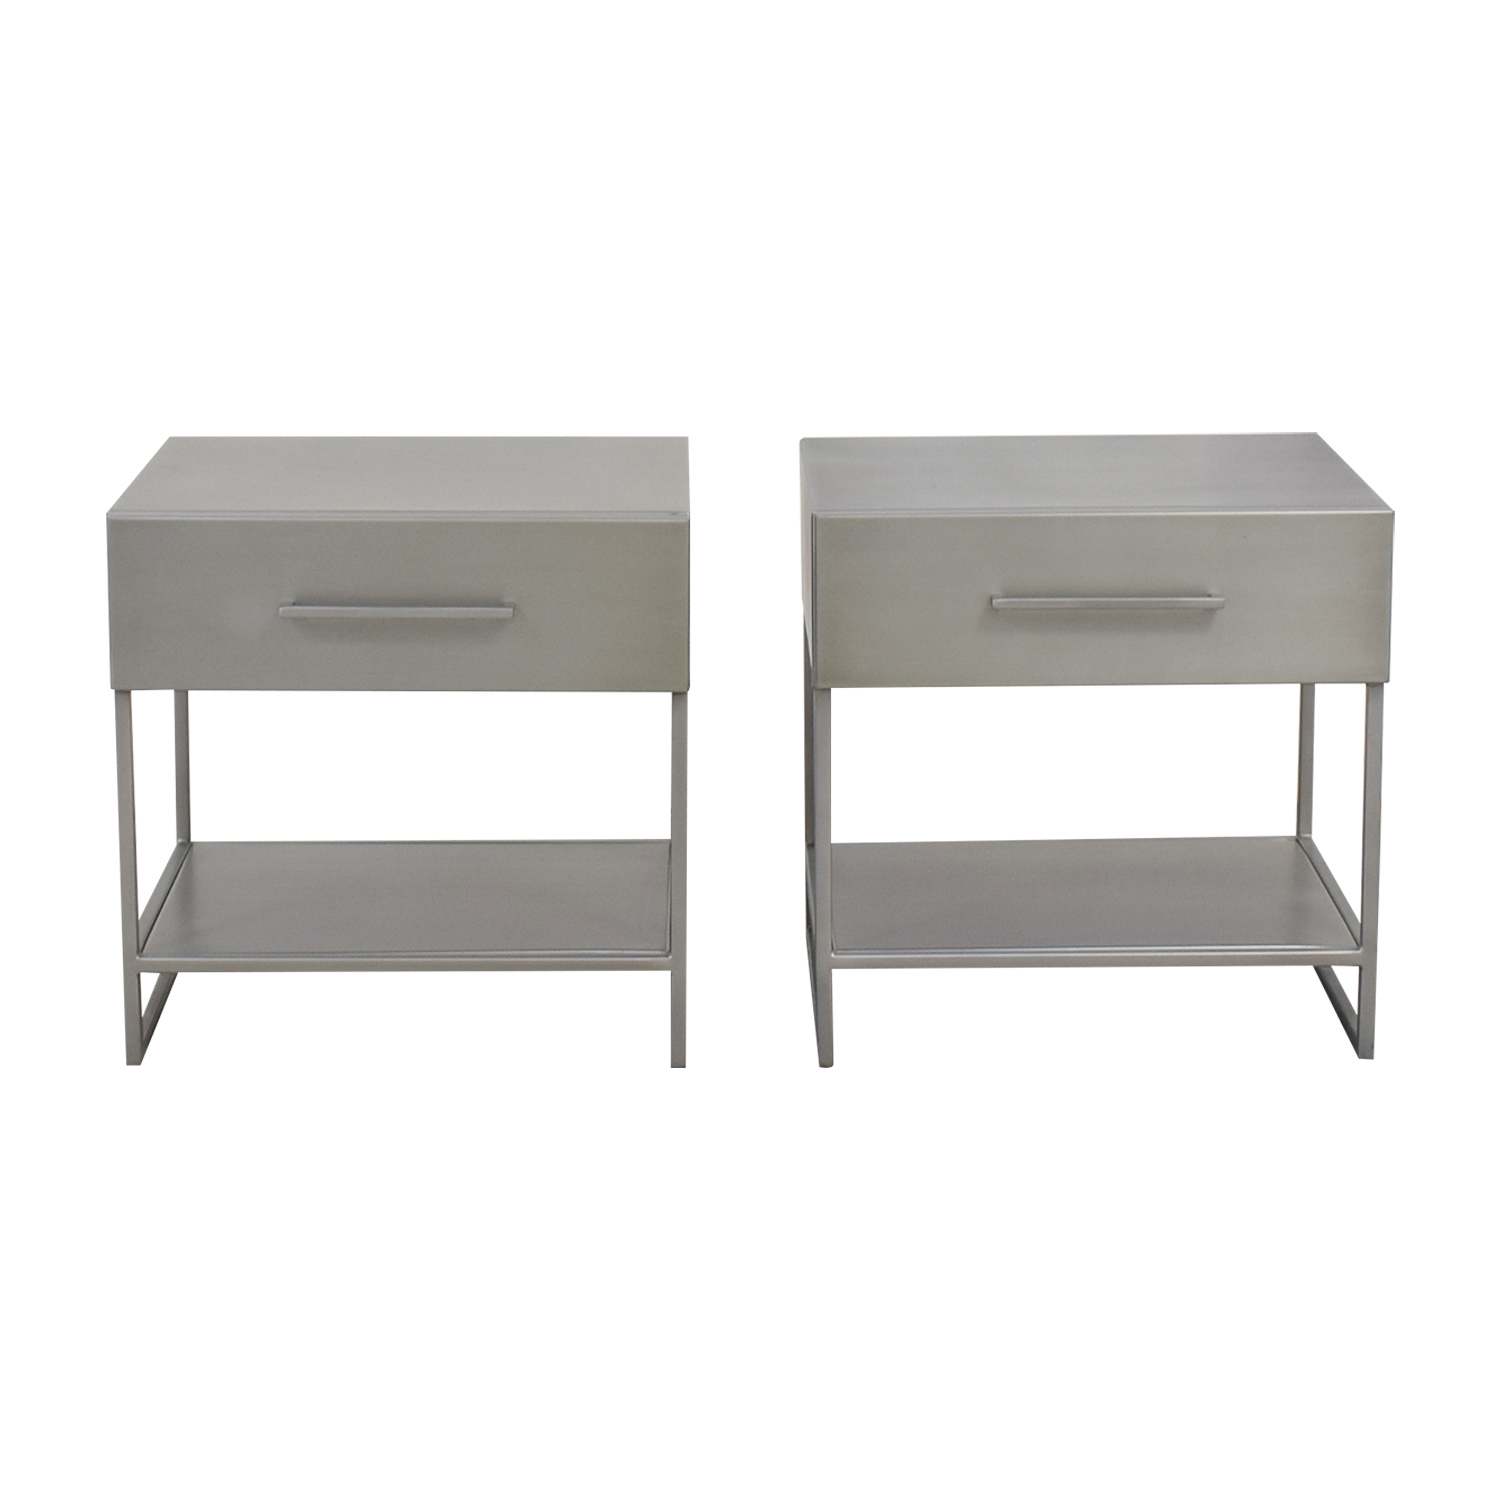 CB2 CB2 Proof Nightstands Tables